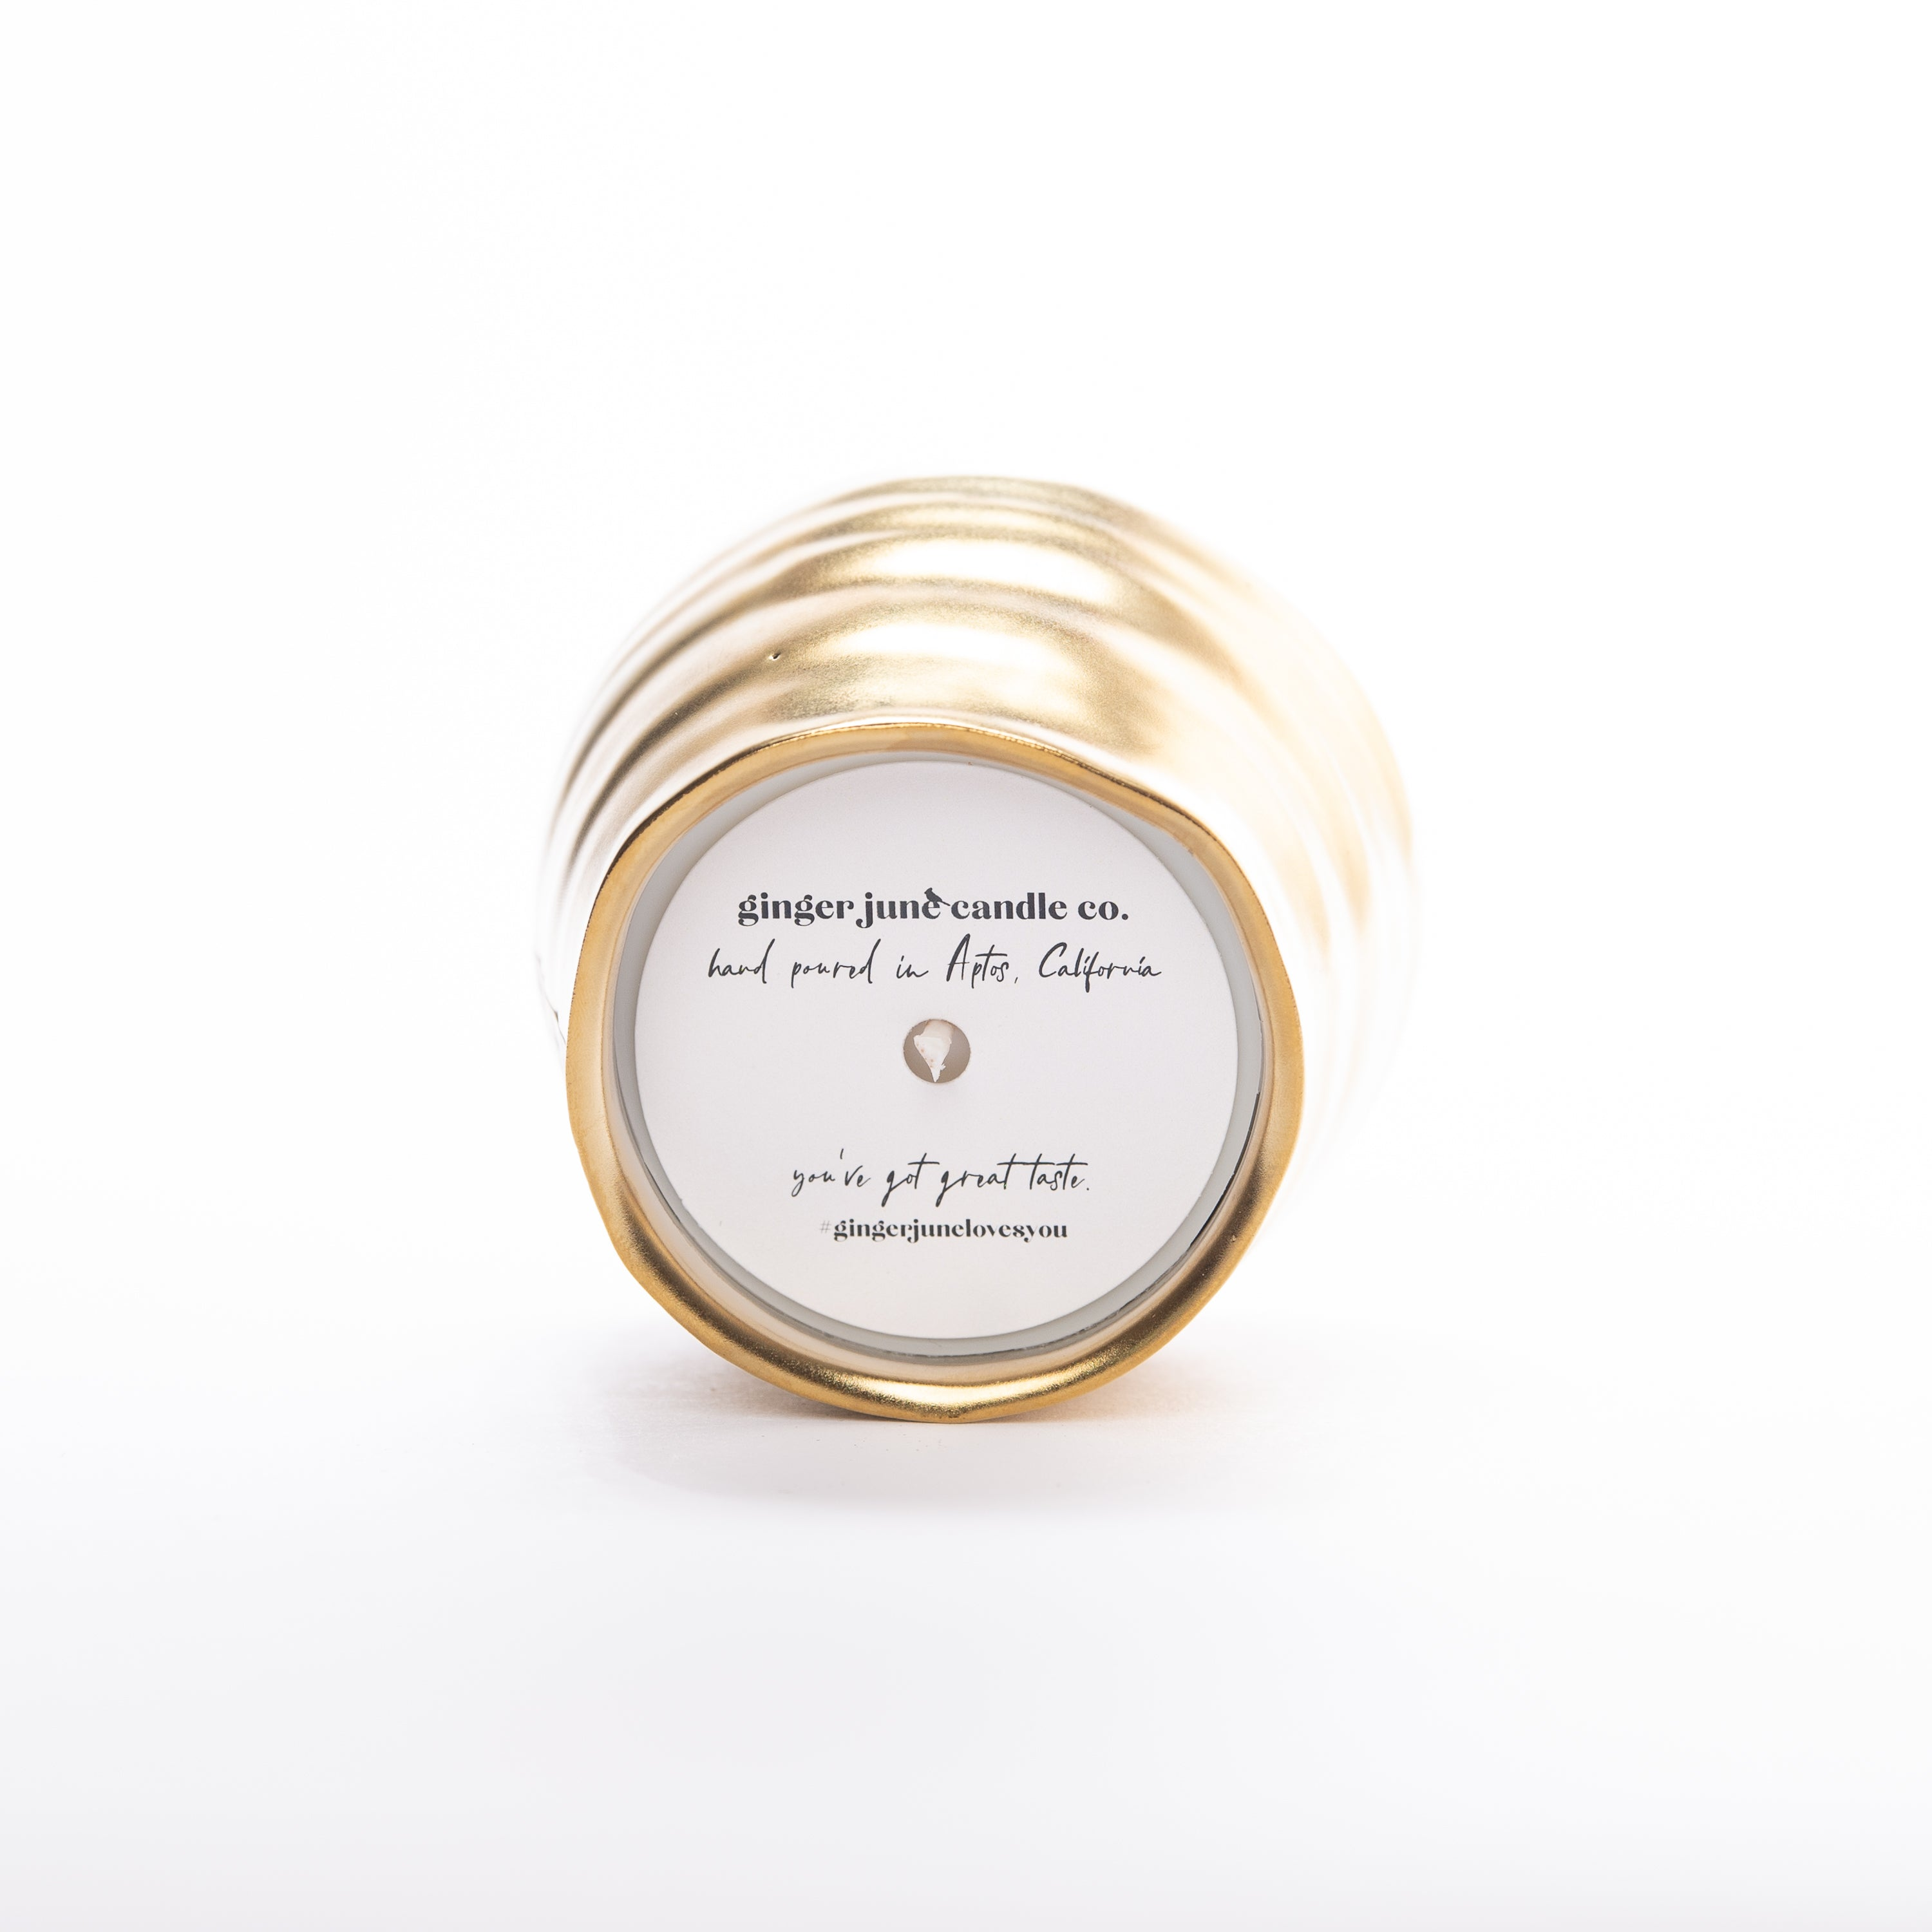 Ginger June Candle Co. - GOLD CERAMIC PINCH POT • 7 OZ SOY CANDLE